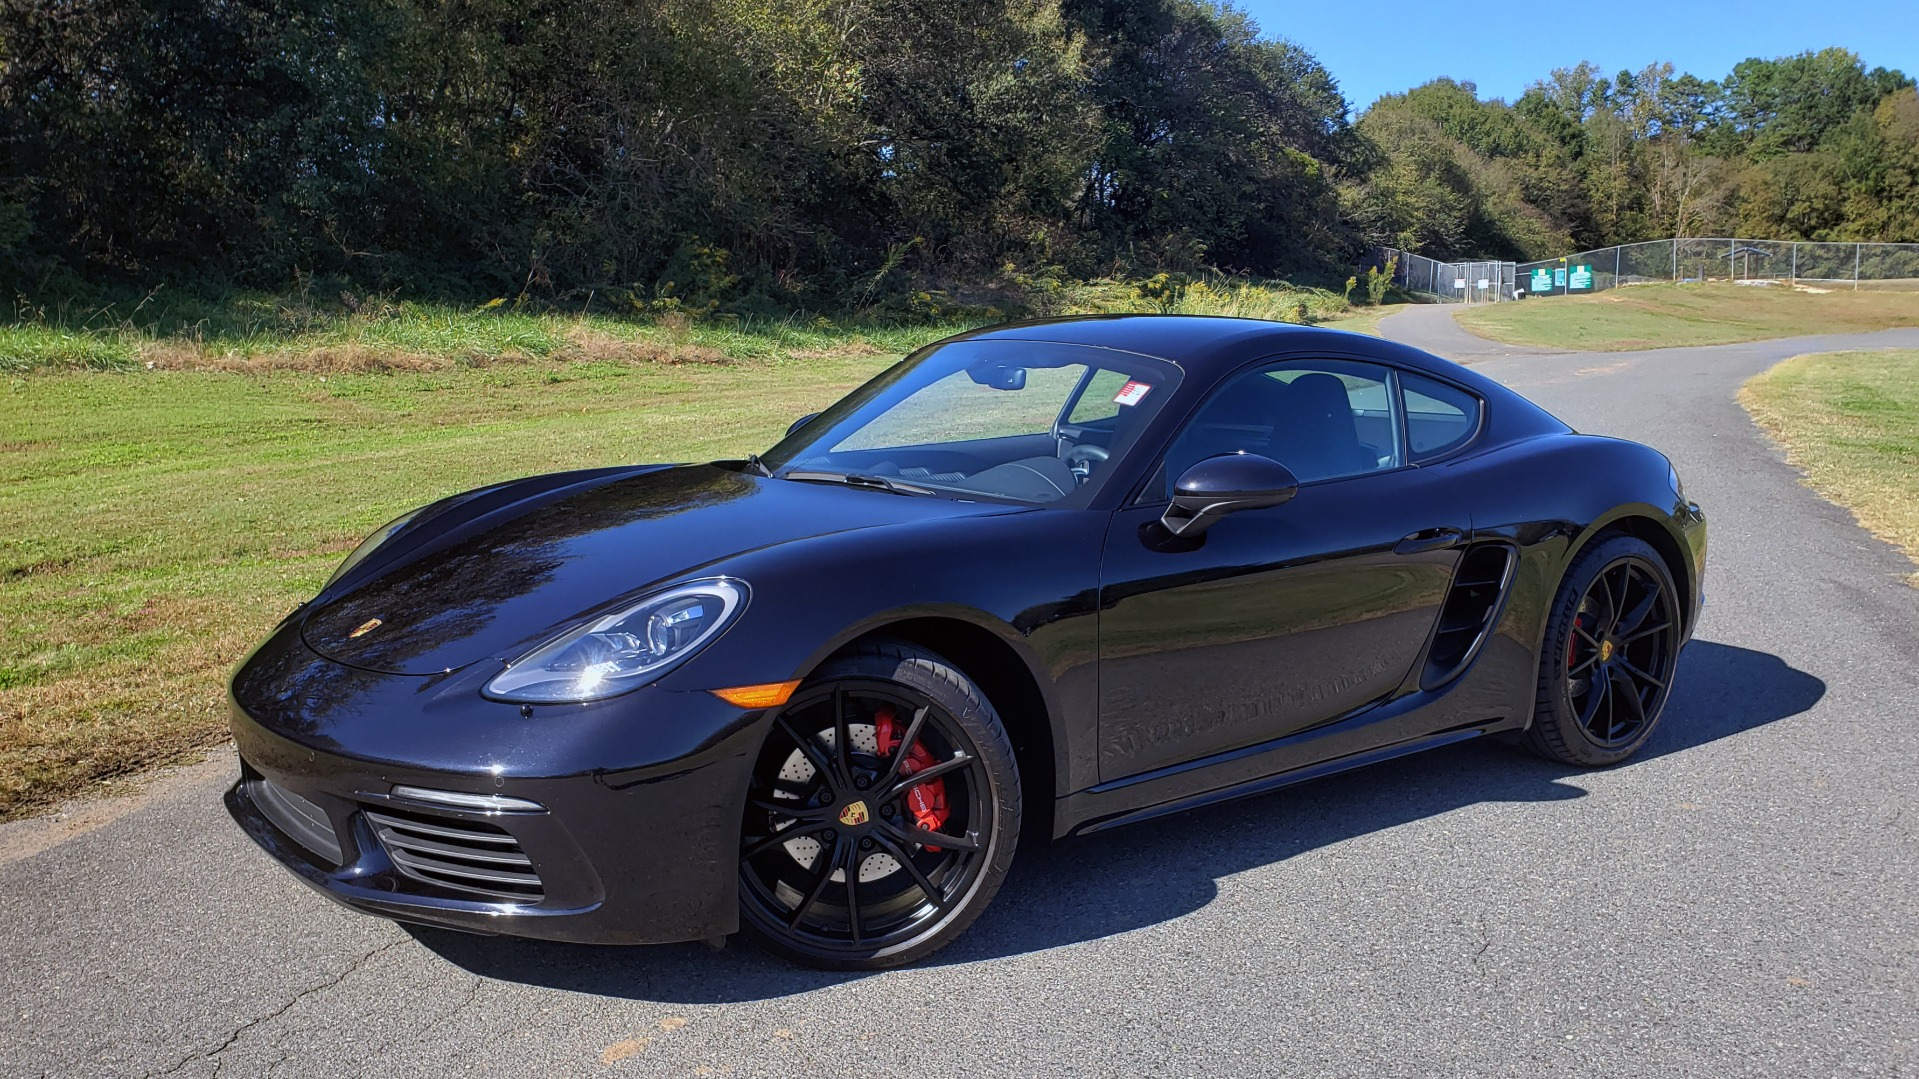 Used 2019 Porsche 718 CAYMAN S COUPE / PDK TRANS / LCA / BOSE / HTD STS / LIGHT DESIGN PKG for sale $67,999 at Formula Imports in Charlotte NC 28227 7